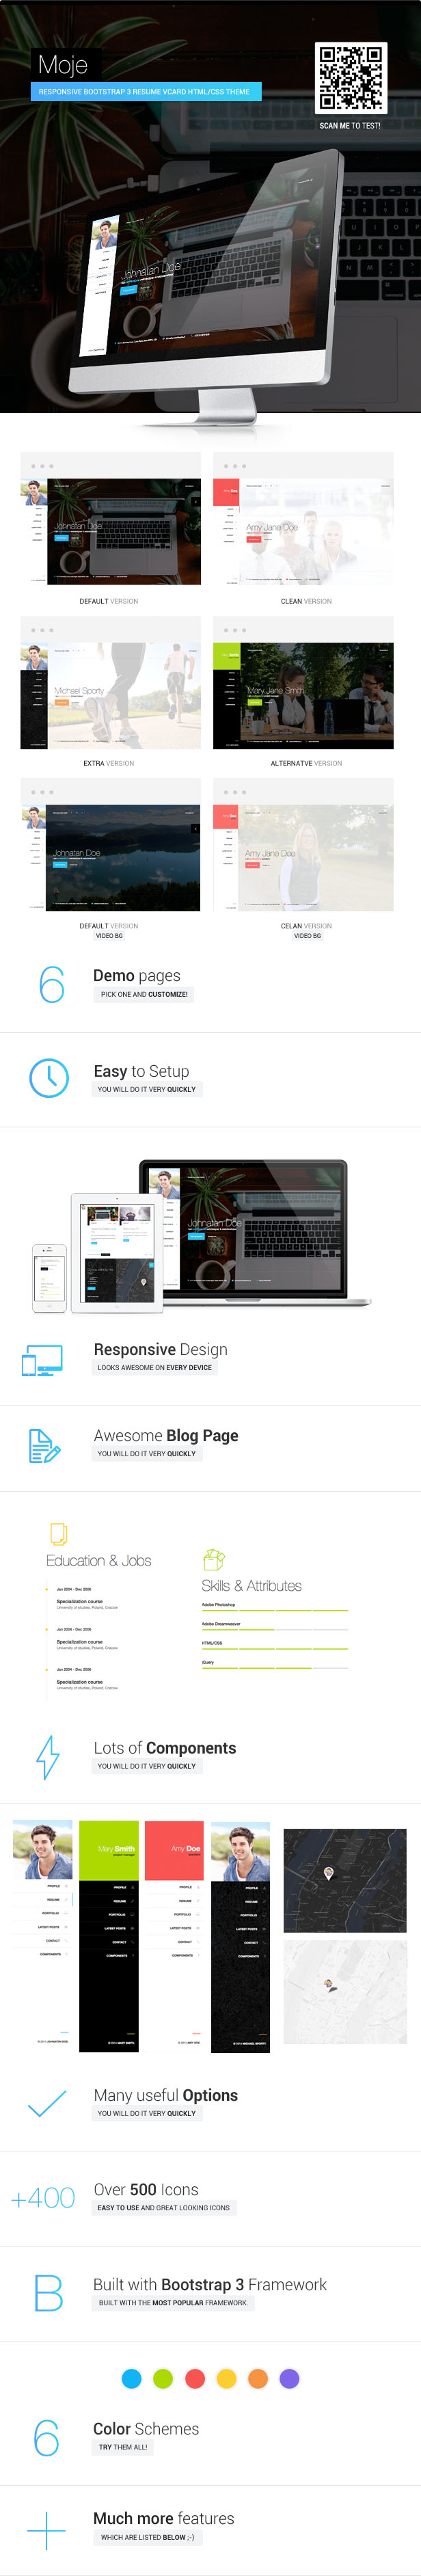 Moje. - Responsive Bootstrap Personal Resume vCard HTML/CSS Theme - 2